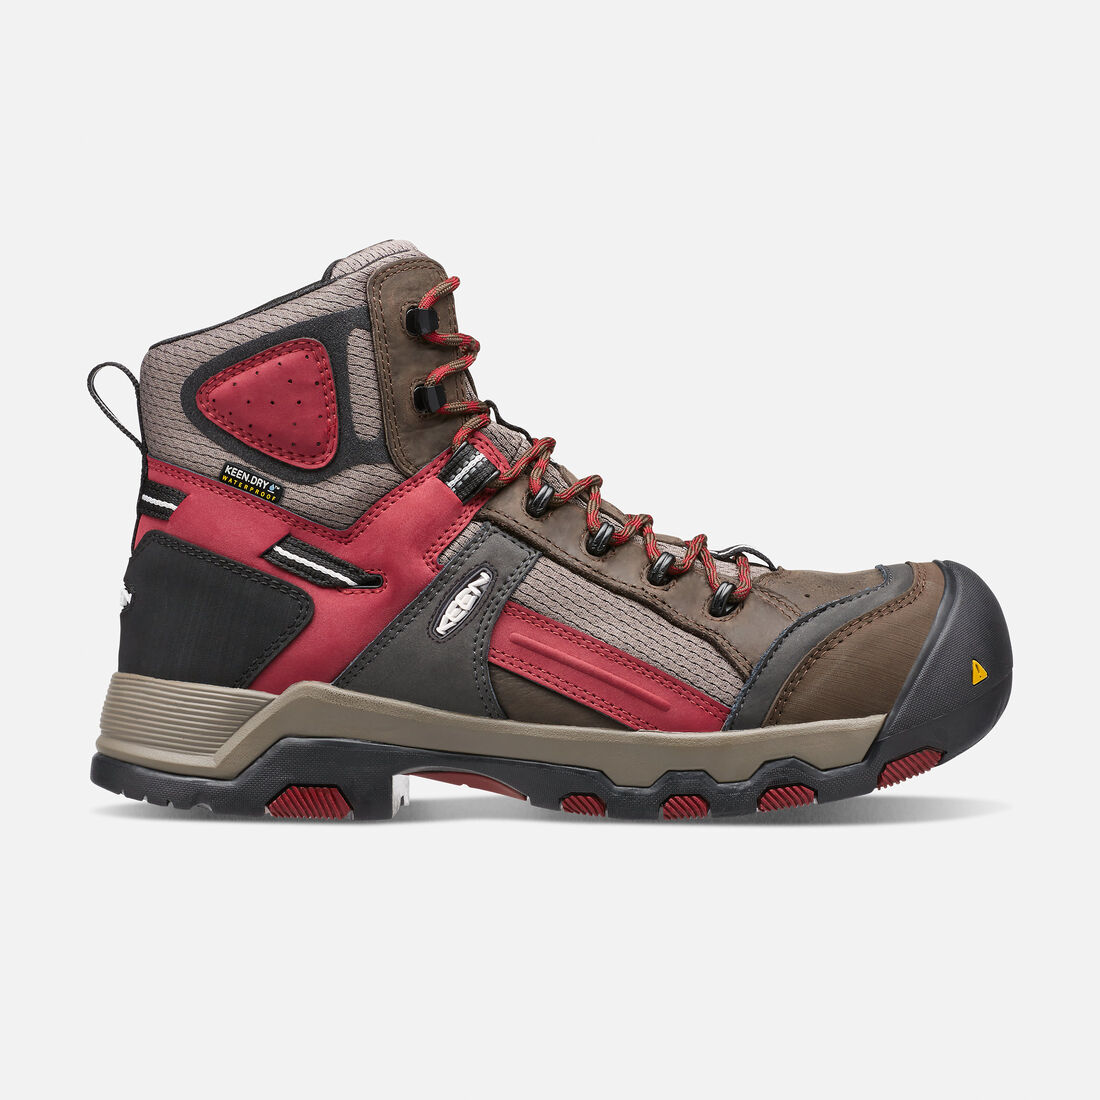 Men's DAVENPORT Waterproof Mid (Composite Toe) in Cascade Brown/Red Dahlia - large view.